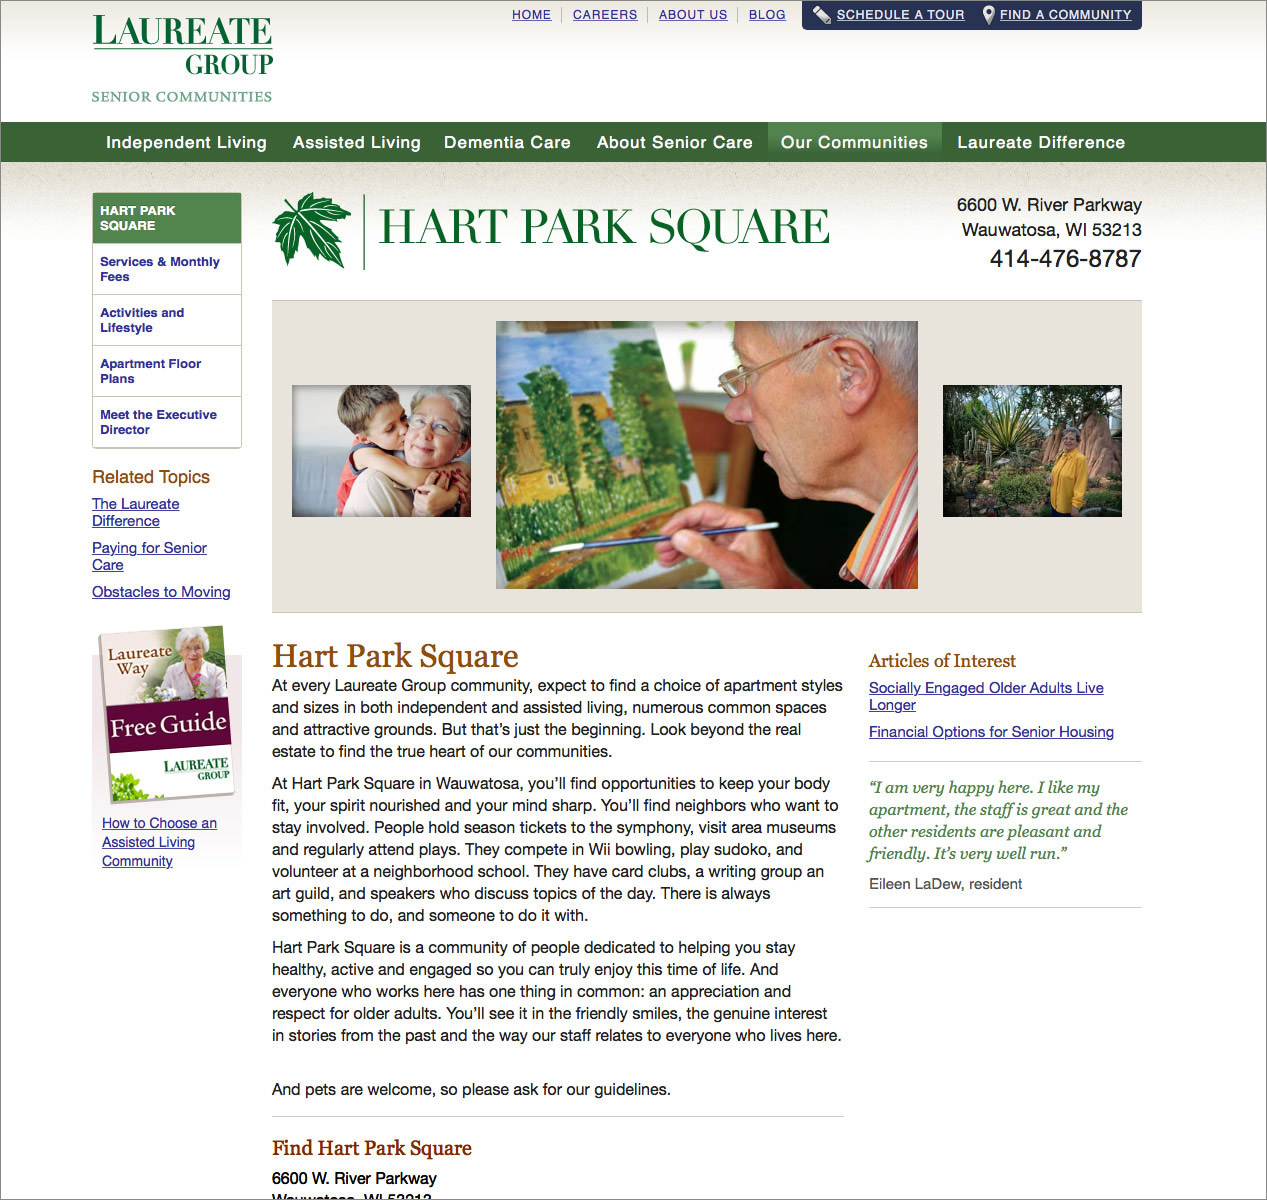 Laureate Group Home